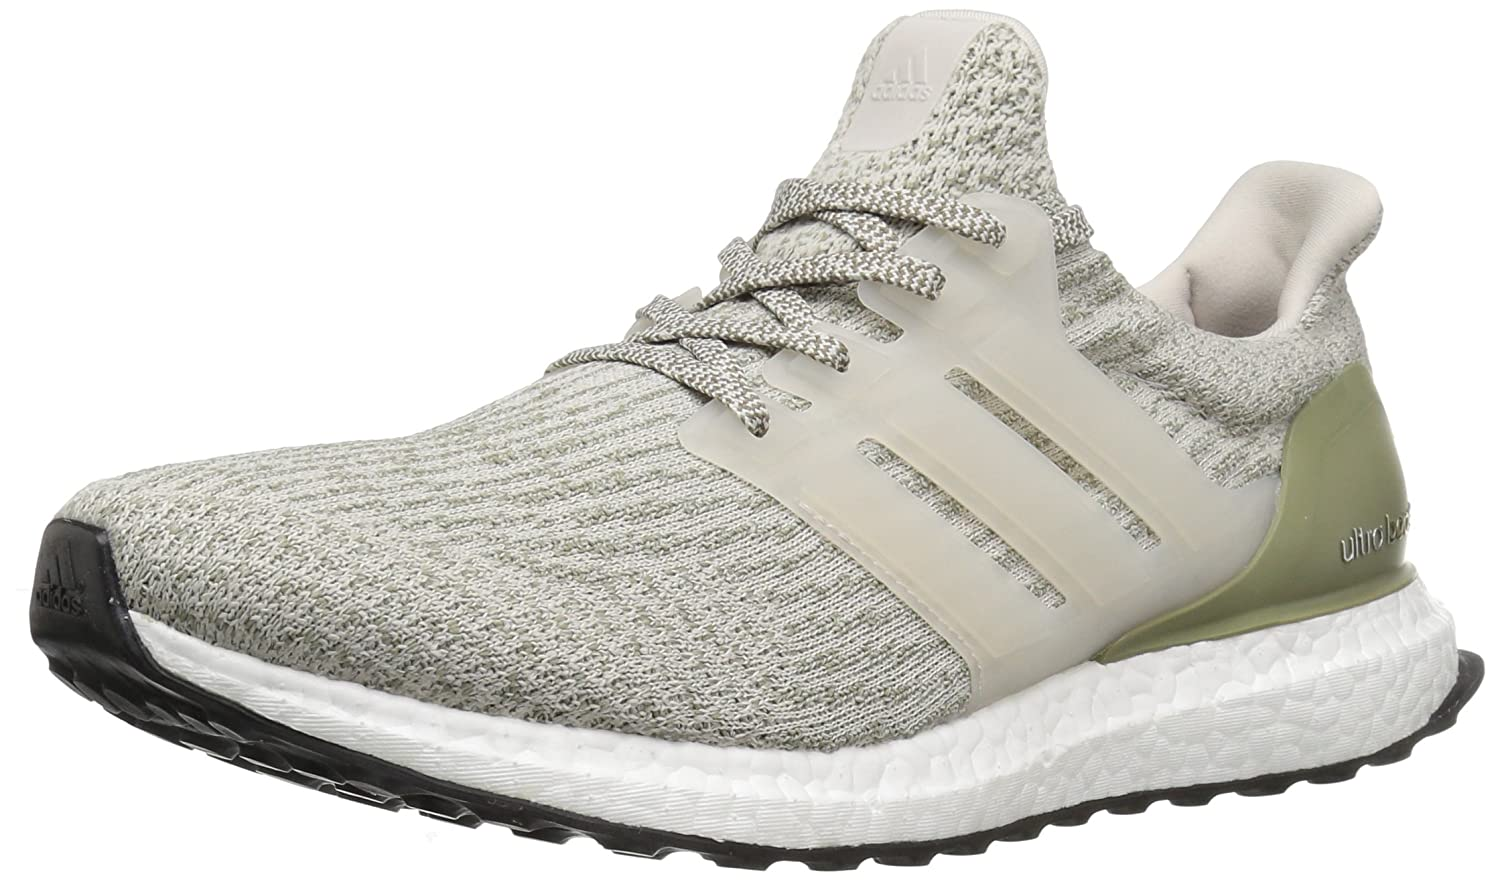 adidas Performance Men's Ultra Boost M Running Shoe B01LP65T08 10.5 D(M) US|Pearl Grey/Pearl Grey/Trace Cargo